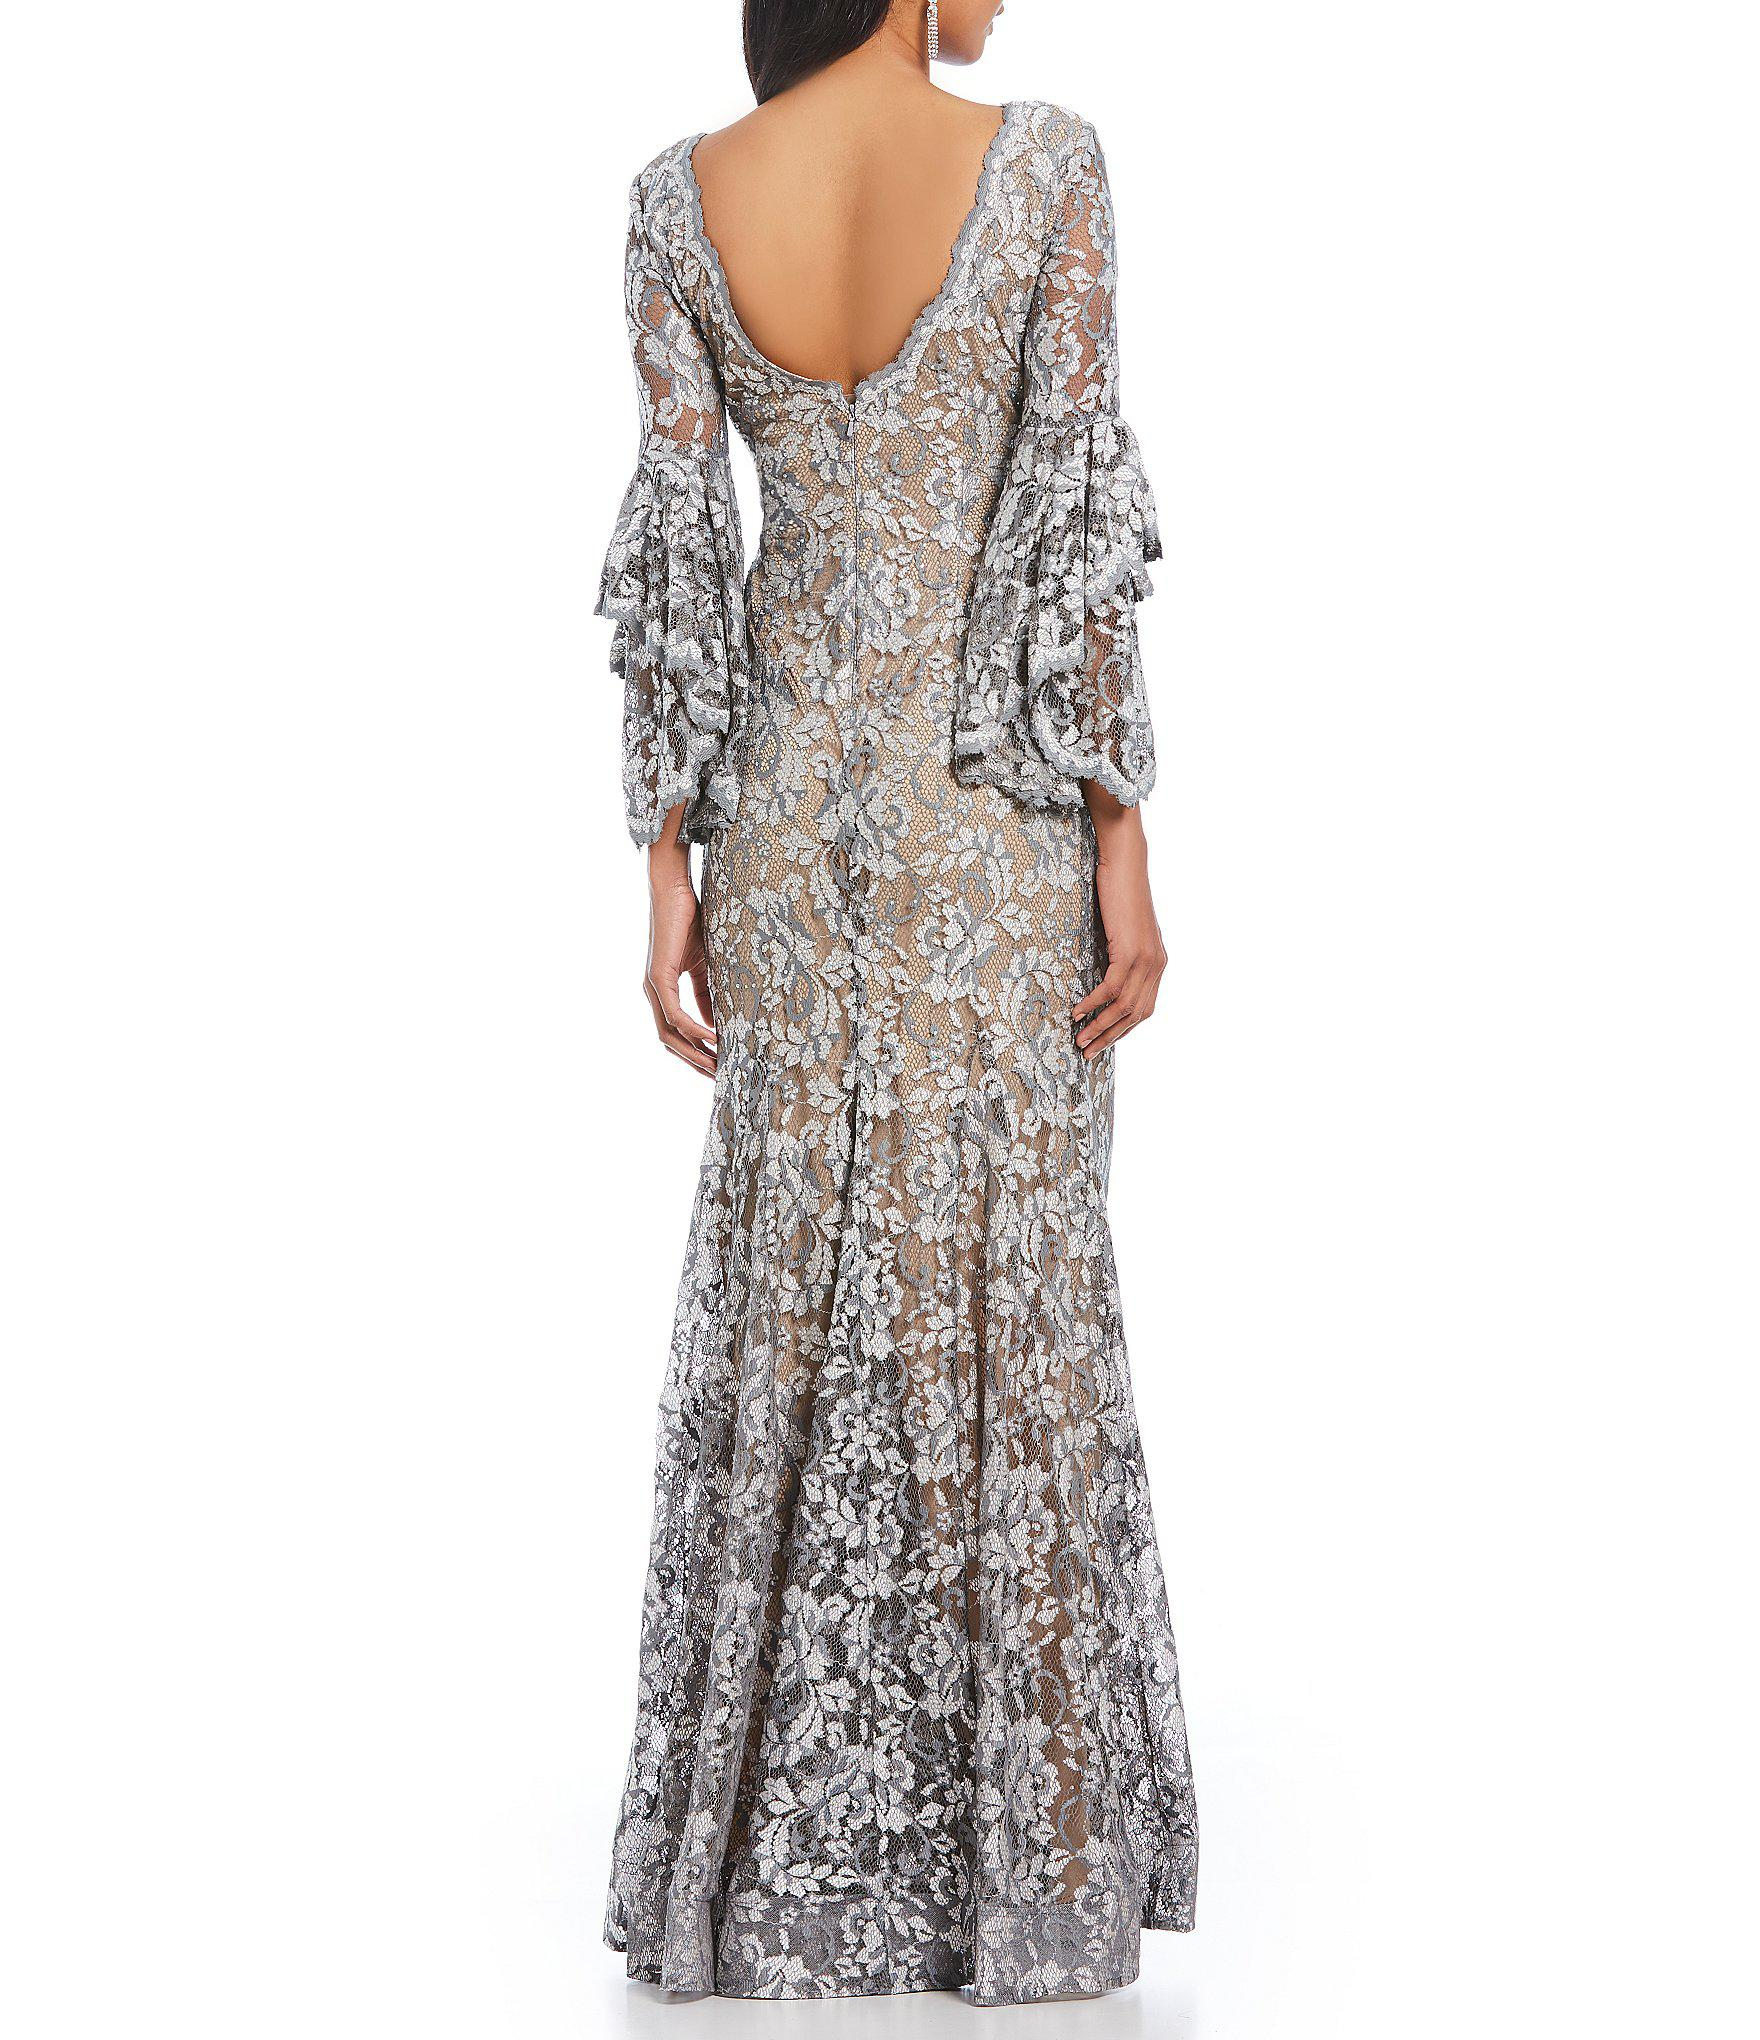 e4733afab16 Betsy   Adam V-neck Lace Bell Sleeve Gown in Gray - Lyst